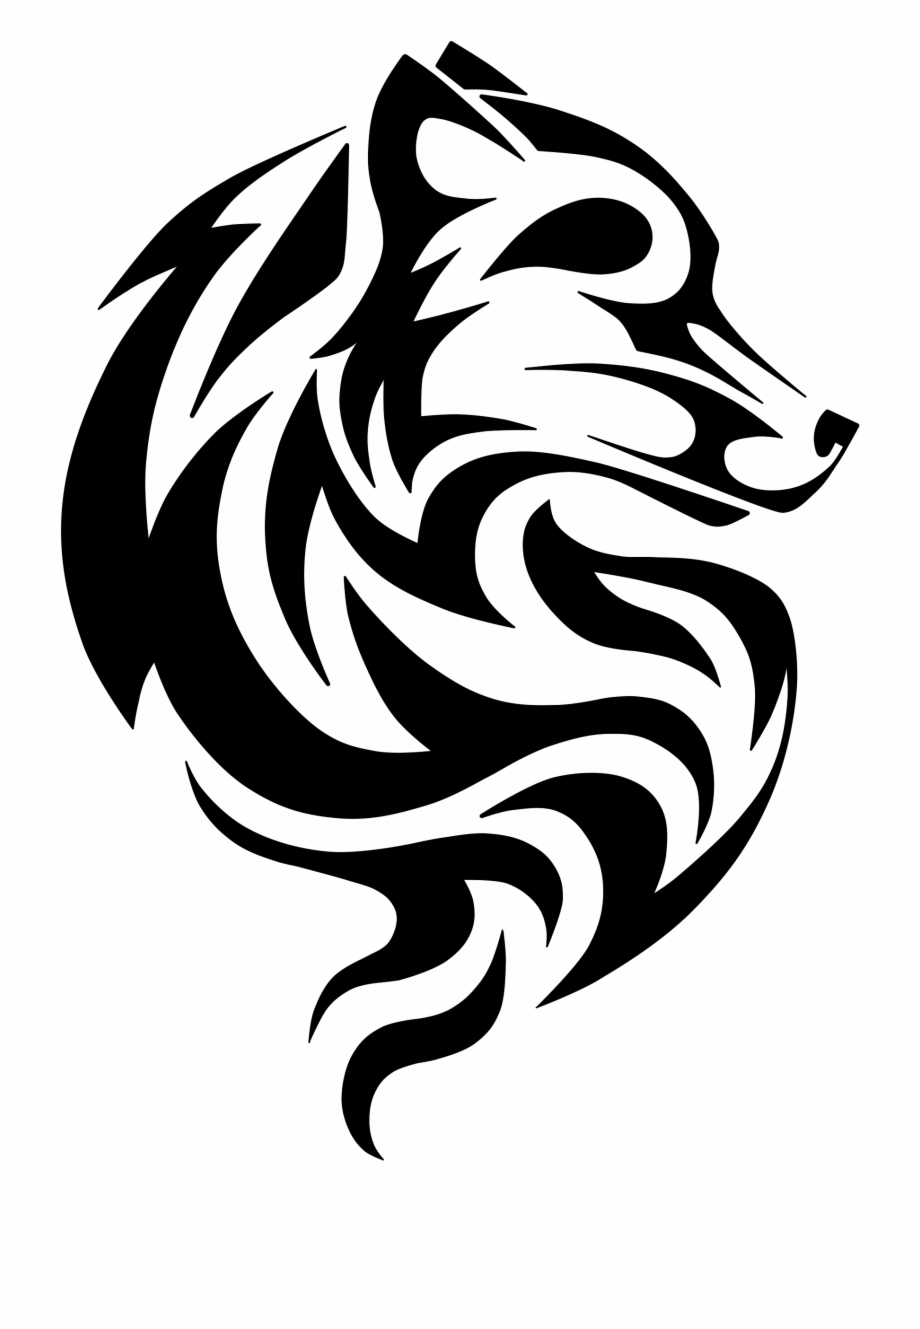 Wolf clipart tattoo graphic transparent library Wolf Tattoo Png - Wolf Head Tattoo Design Free PNG Images & Clipart ... graphic transparent library